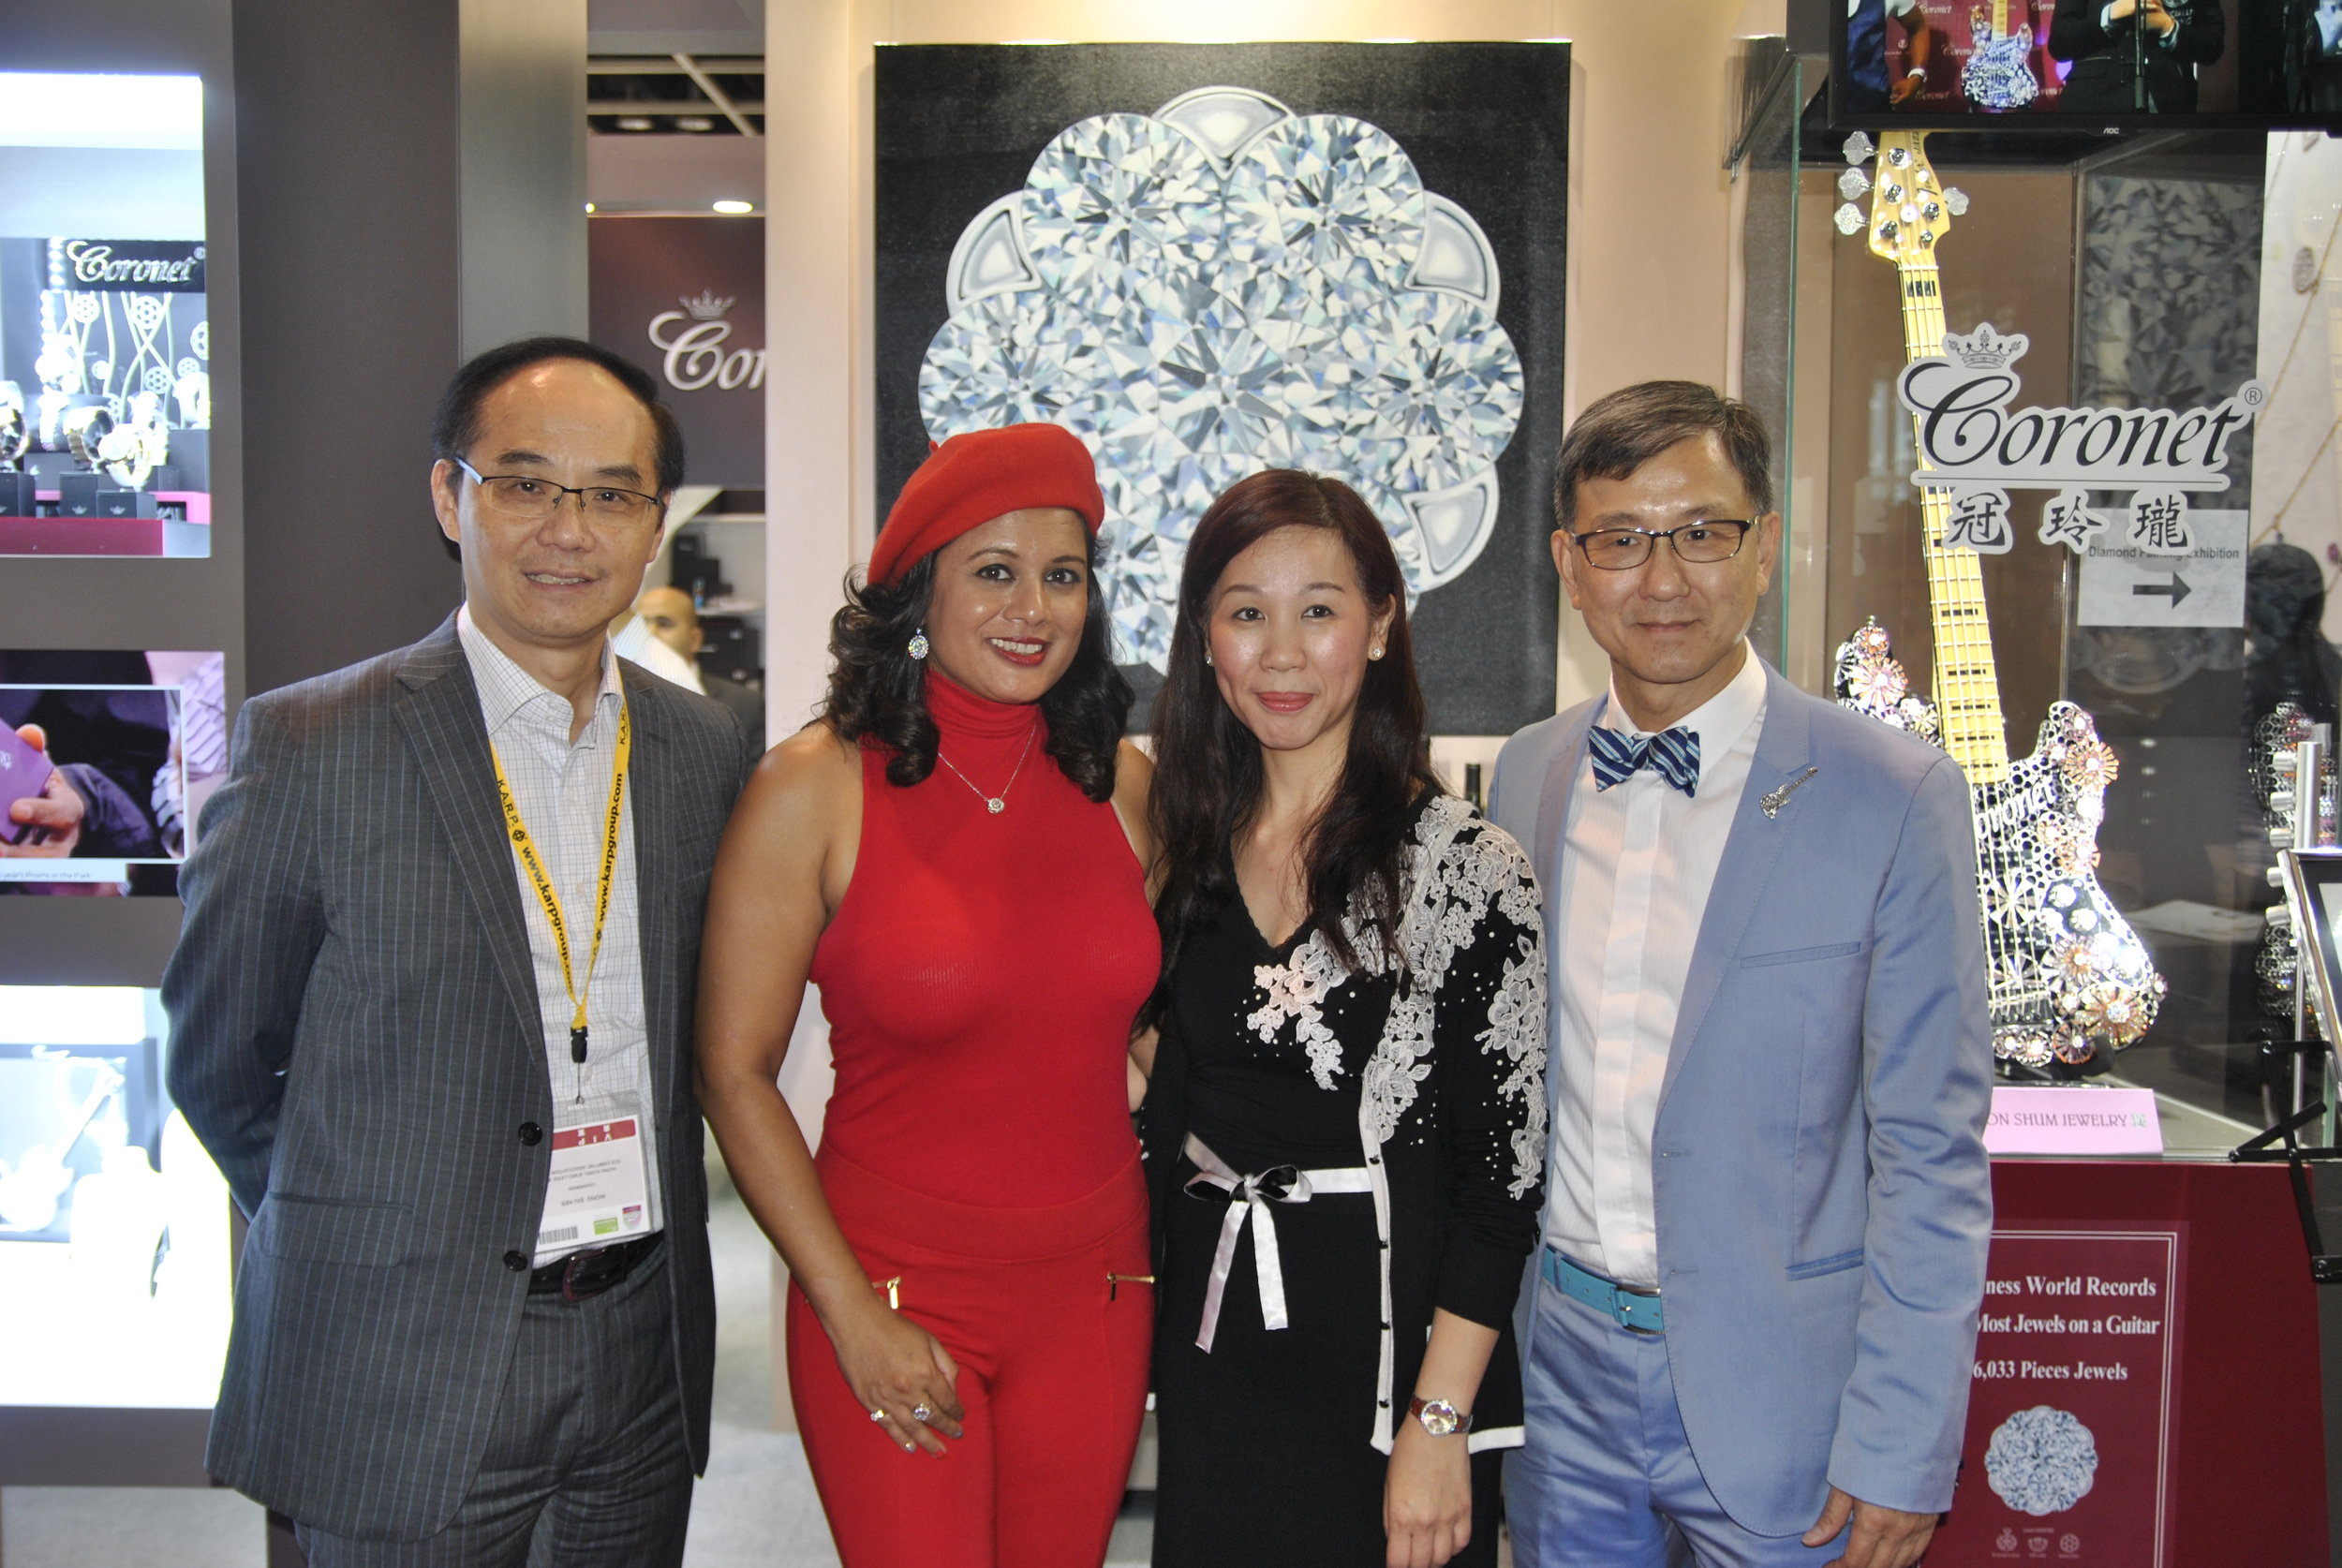 The Coronet Diamond painting was unveiled at the September Hong Kong Jewellery & Gem Fair 2016. L to R: Kent Wong, Chow Tai Fook, artist Reena Ahluwalia, Alice Trinh & Aaron Shum, Aaron Shum Jewelry.